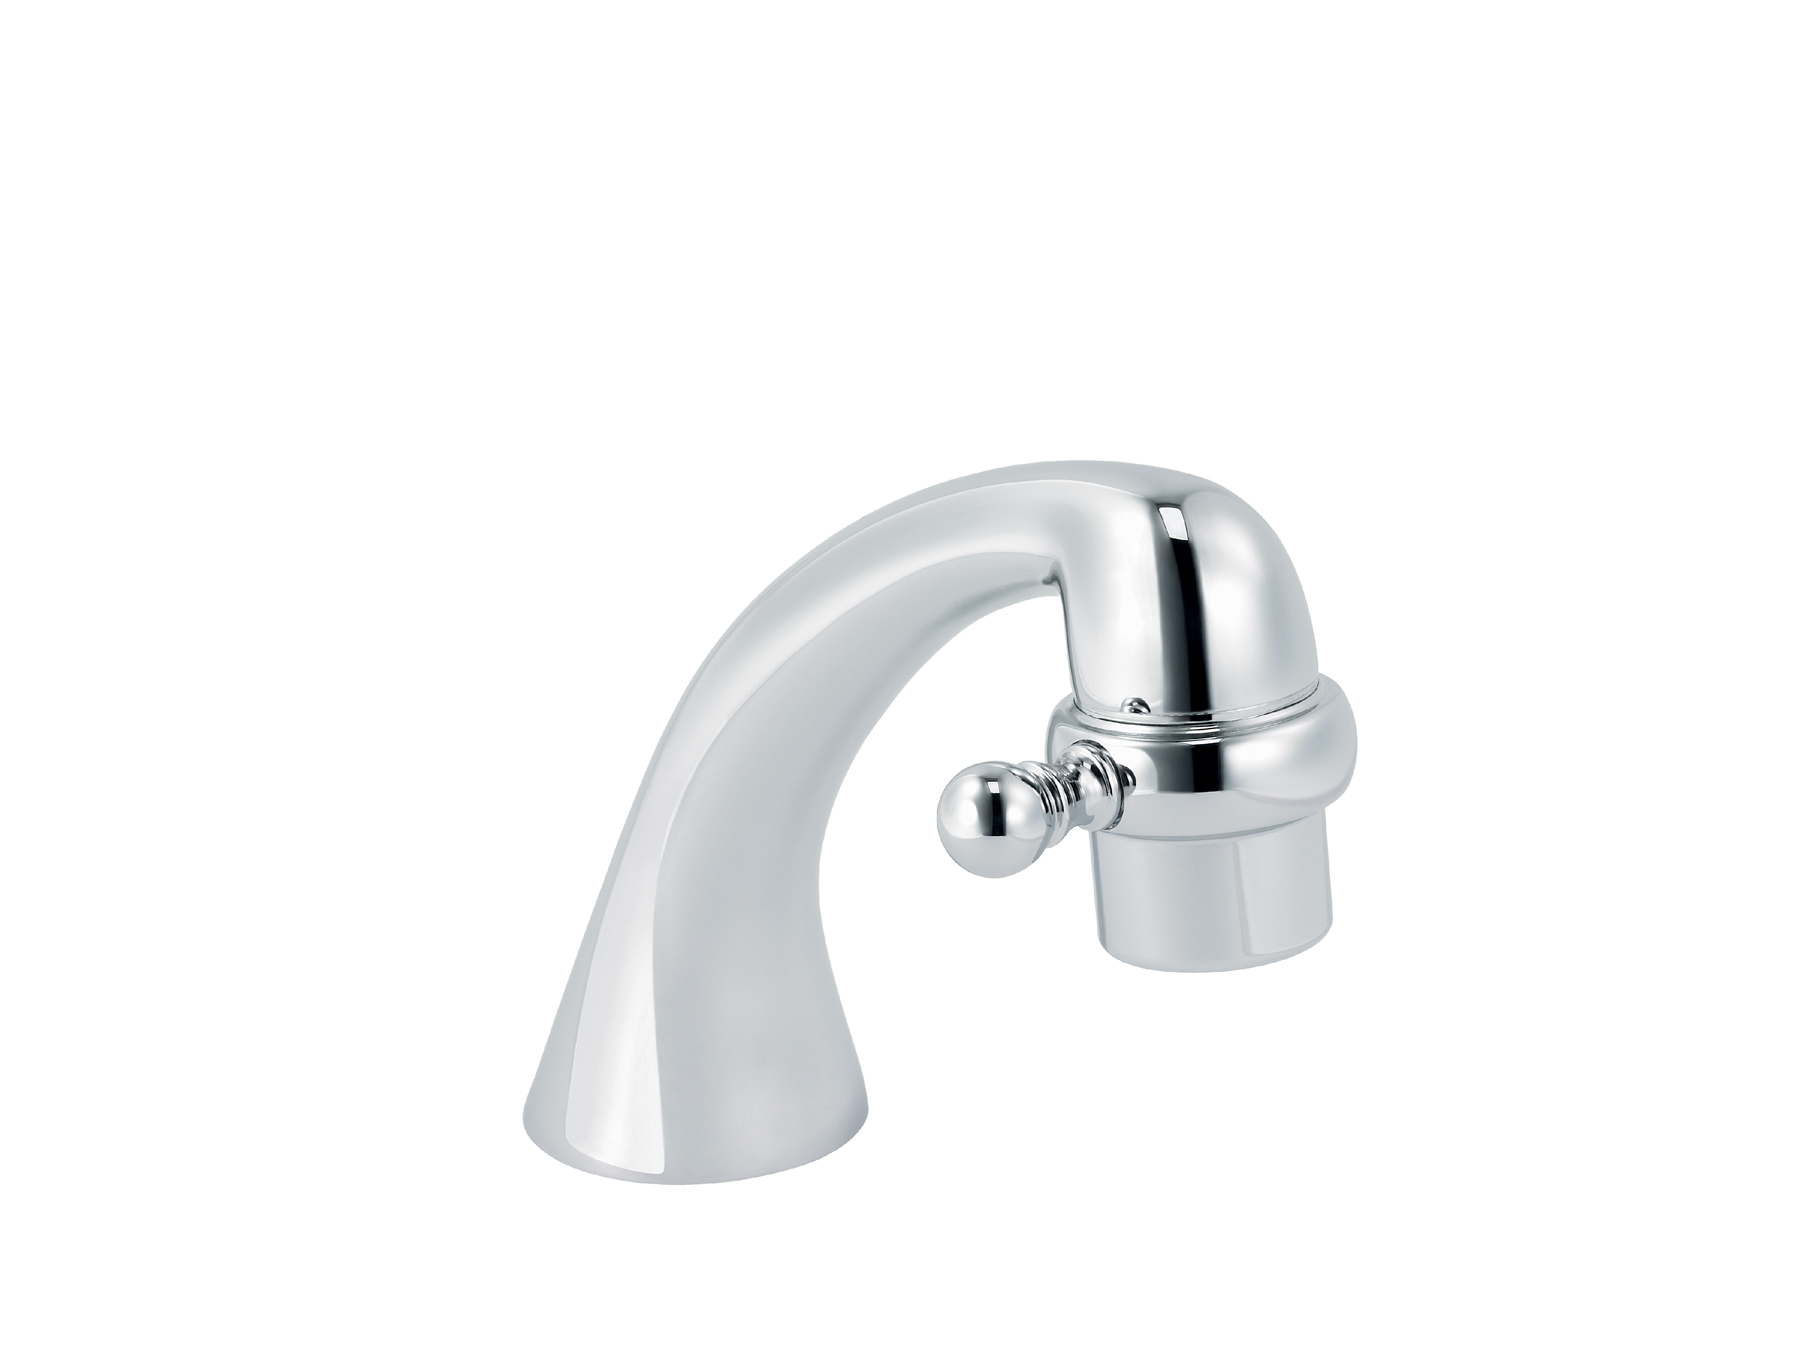 Washbasin tap, Country 1920.--.31